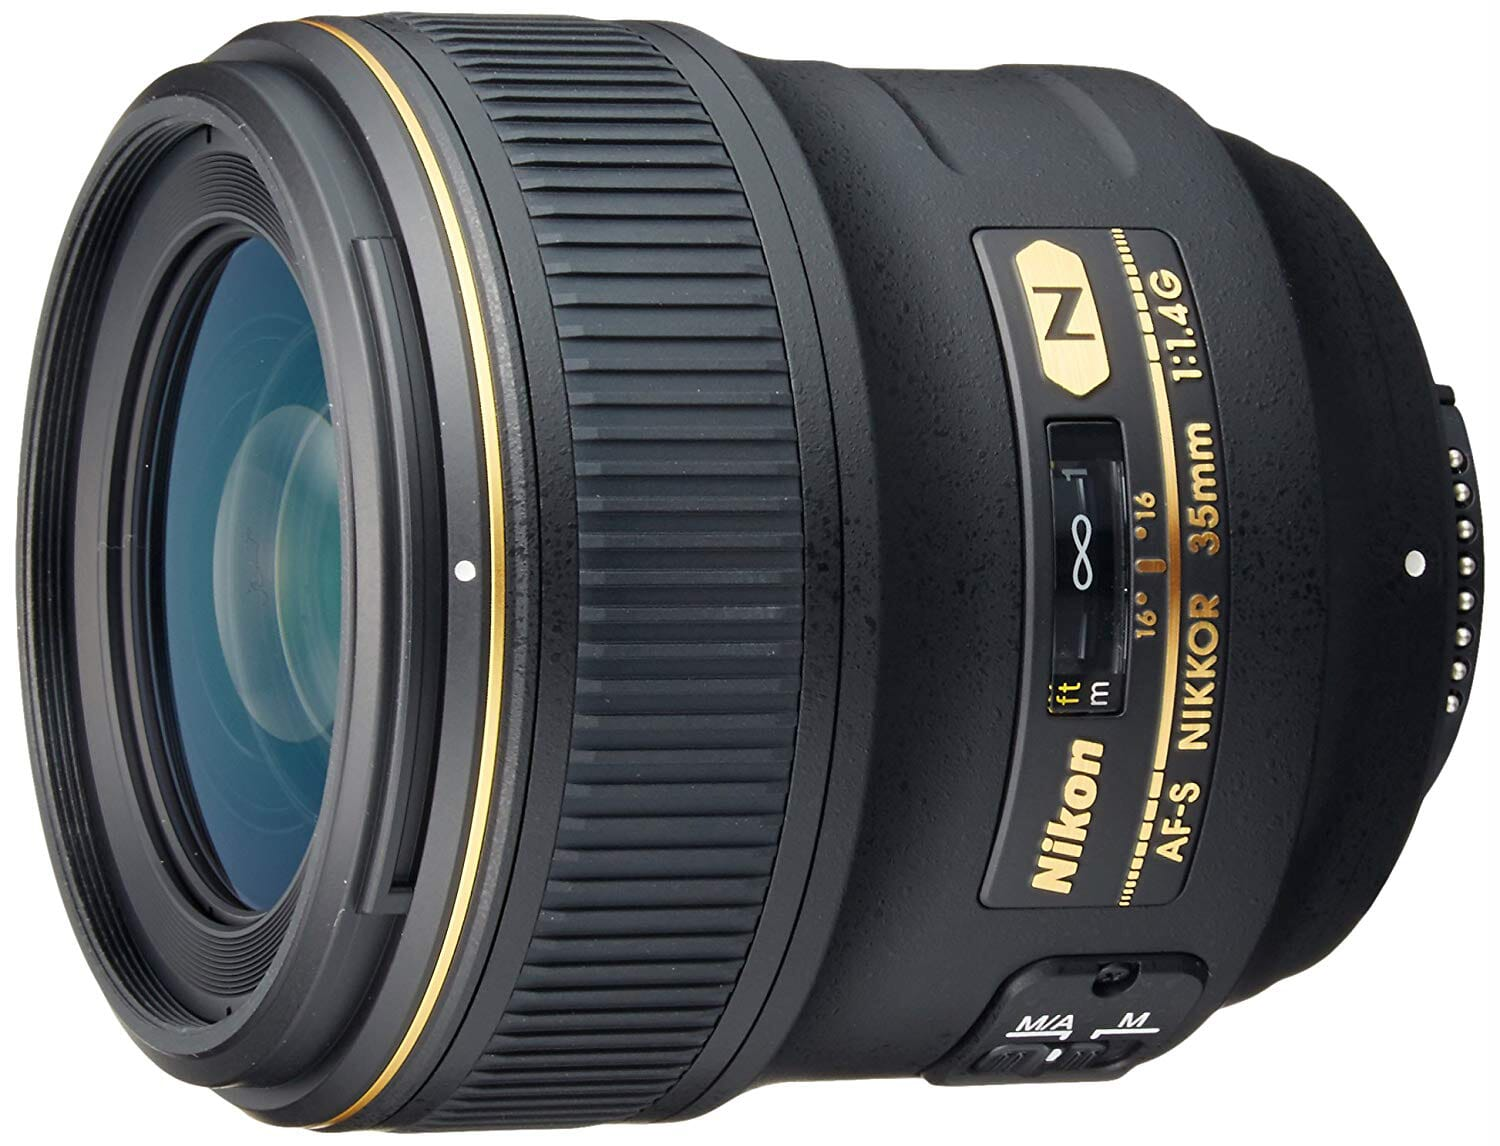 Nikon 35mm best street photography lens for nikon